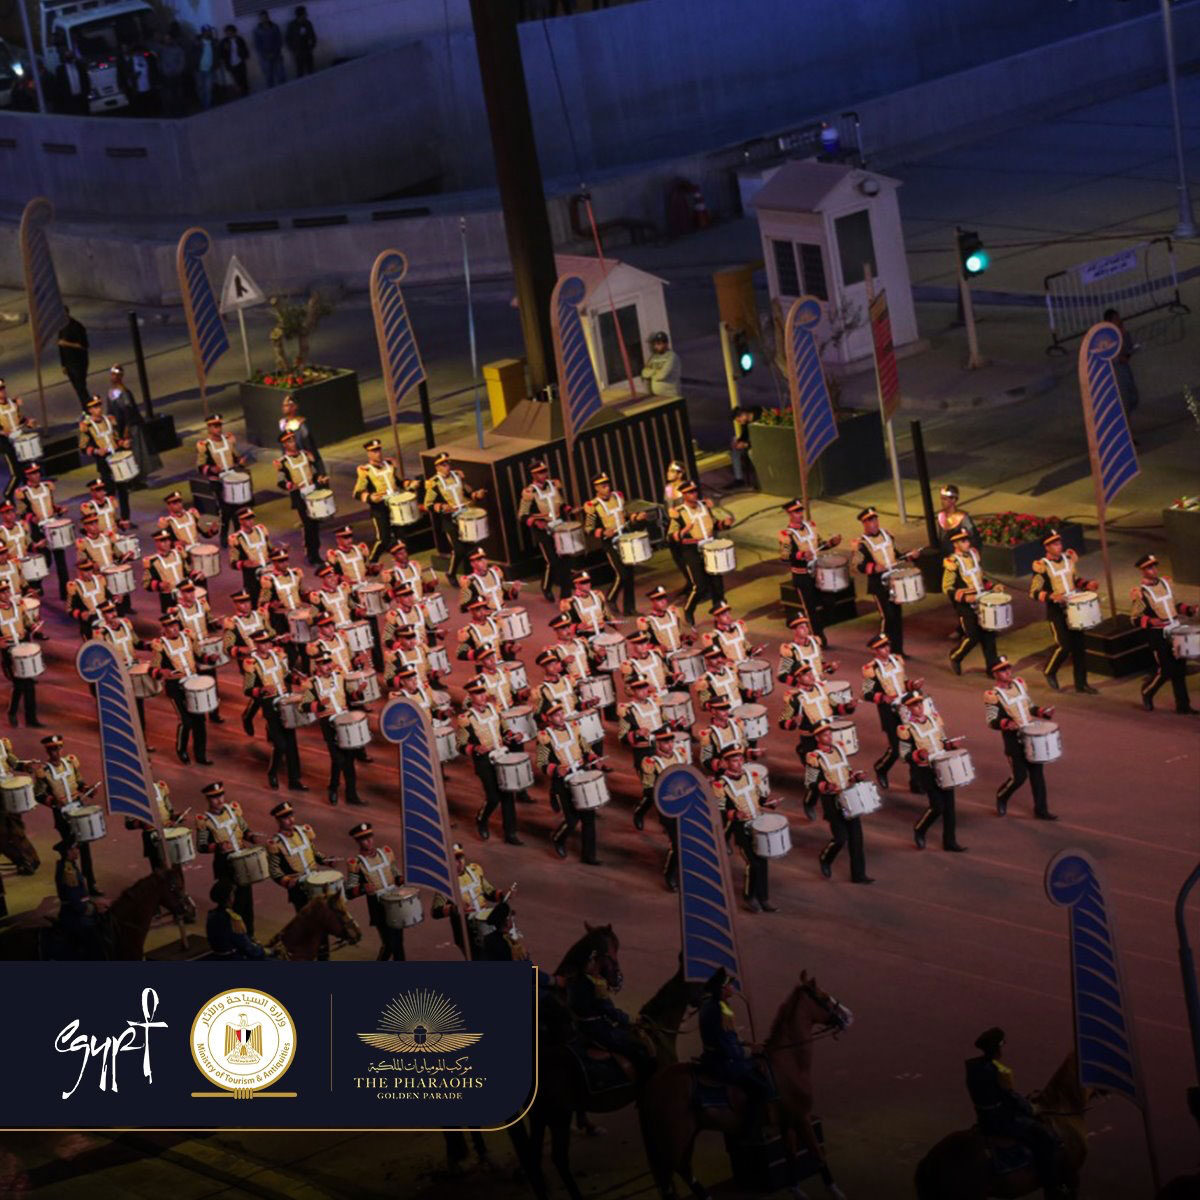 Snapshot from the Golden Parade of the Pharaohs. Credit: Ministry of Tourism and Antiquities of Egypt